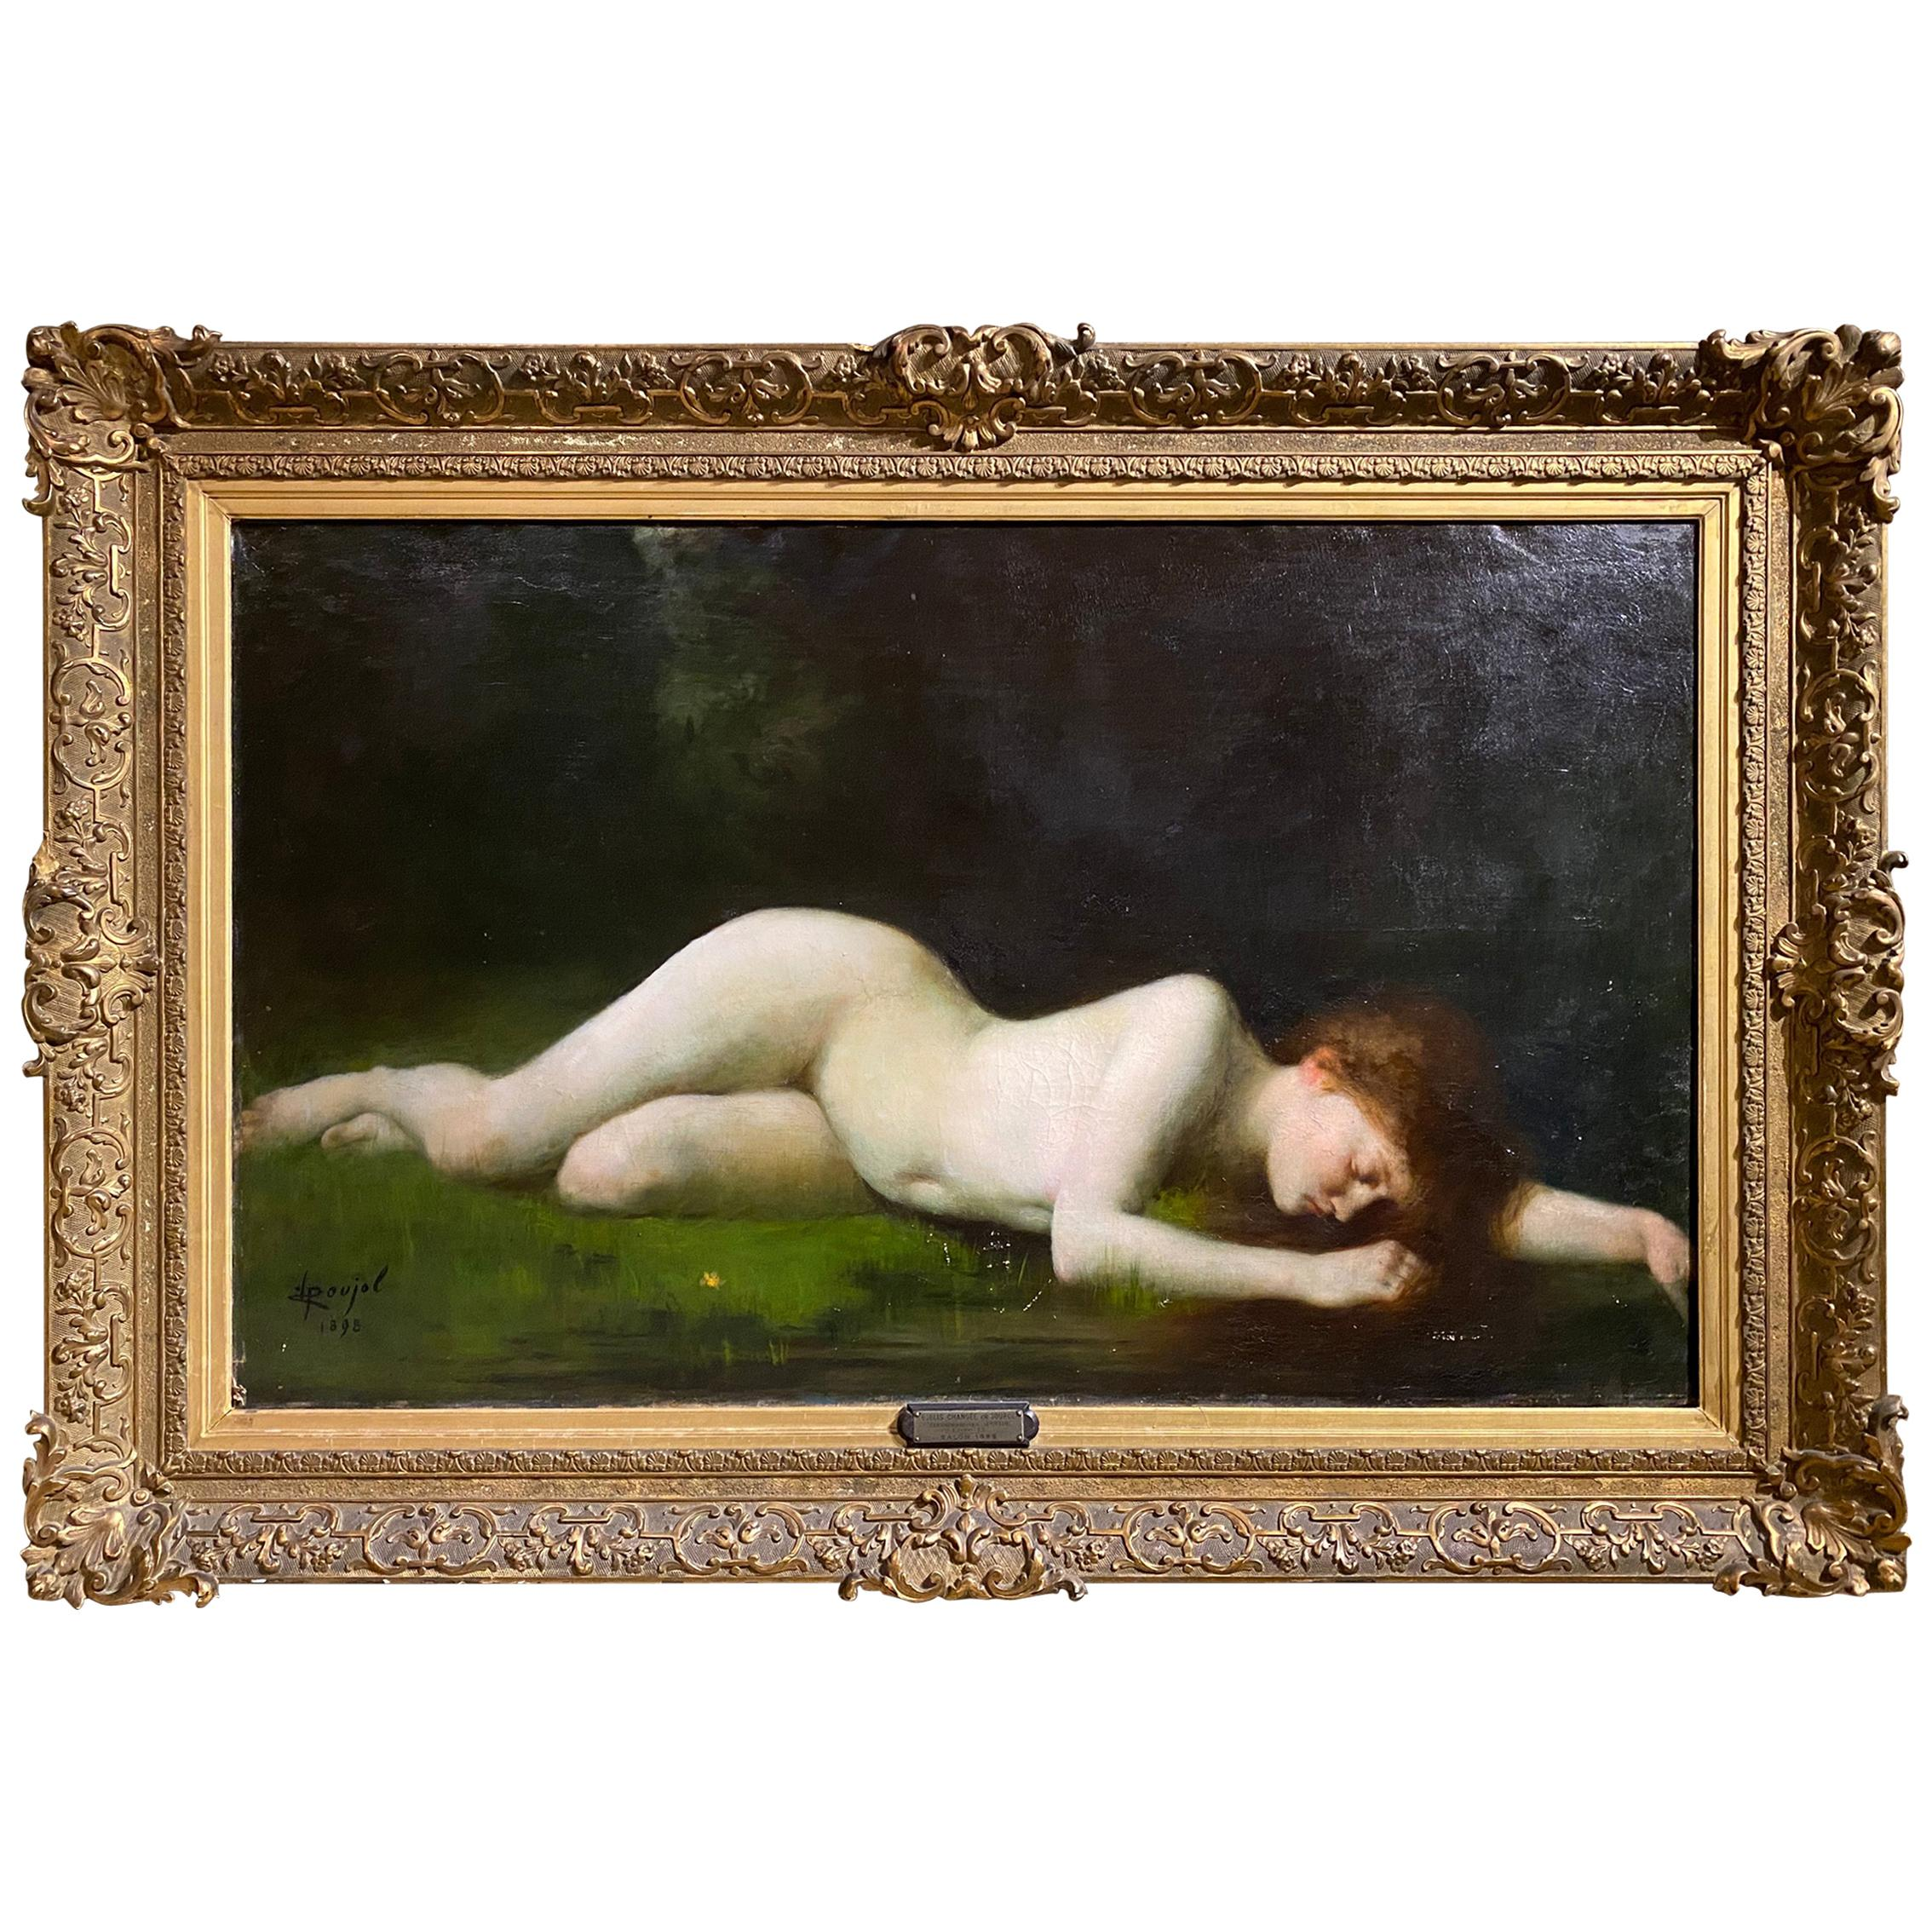 Large 19th Century French Oil/Canvas Titled 'Byblis' by Pierre Poujol